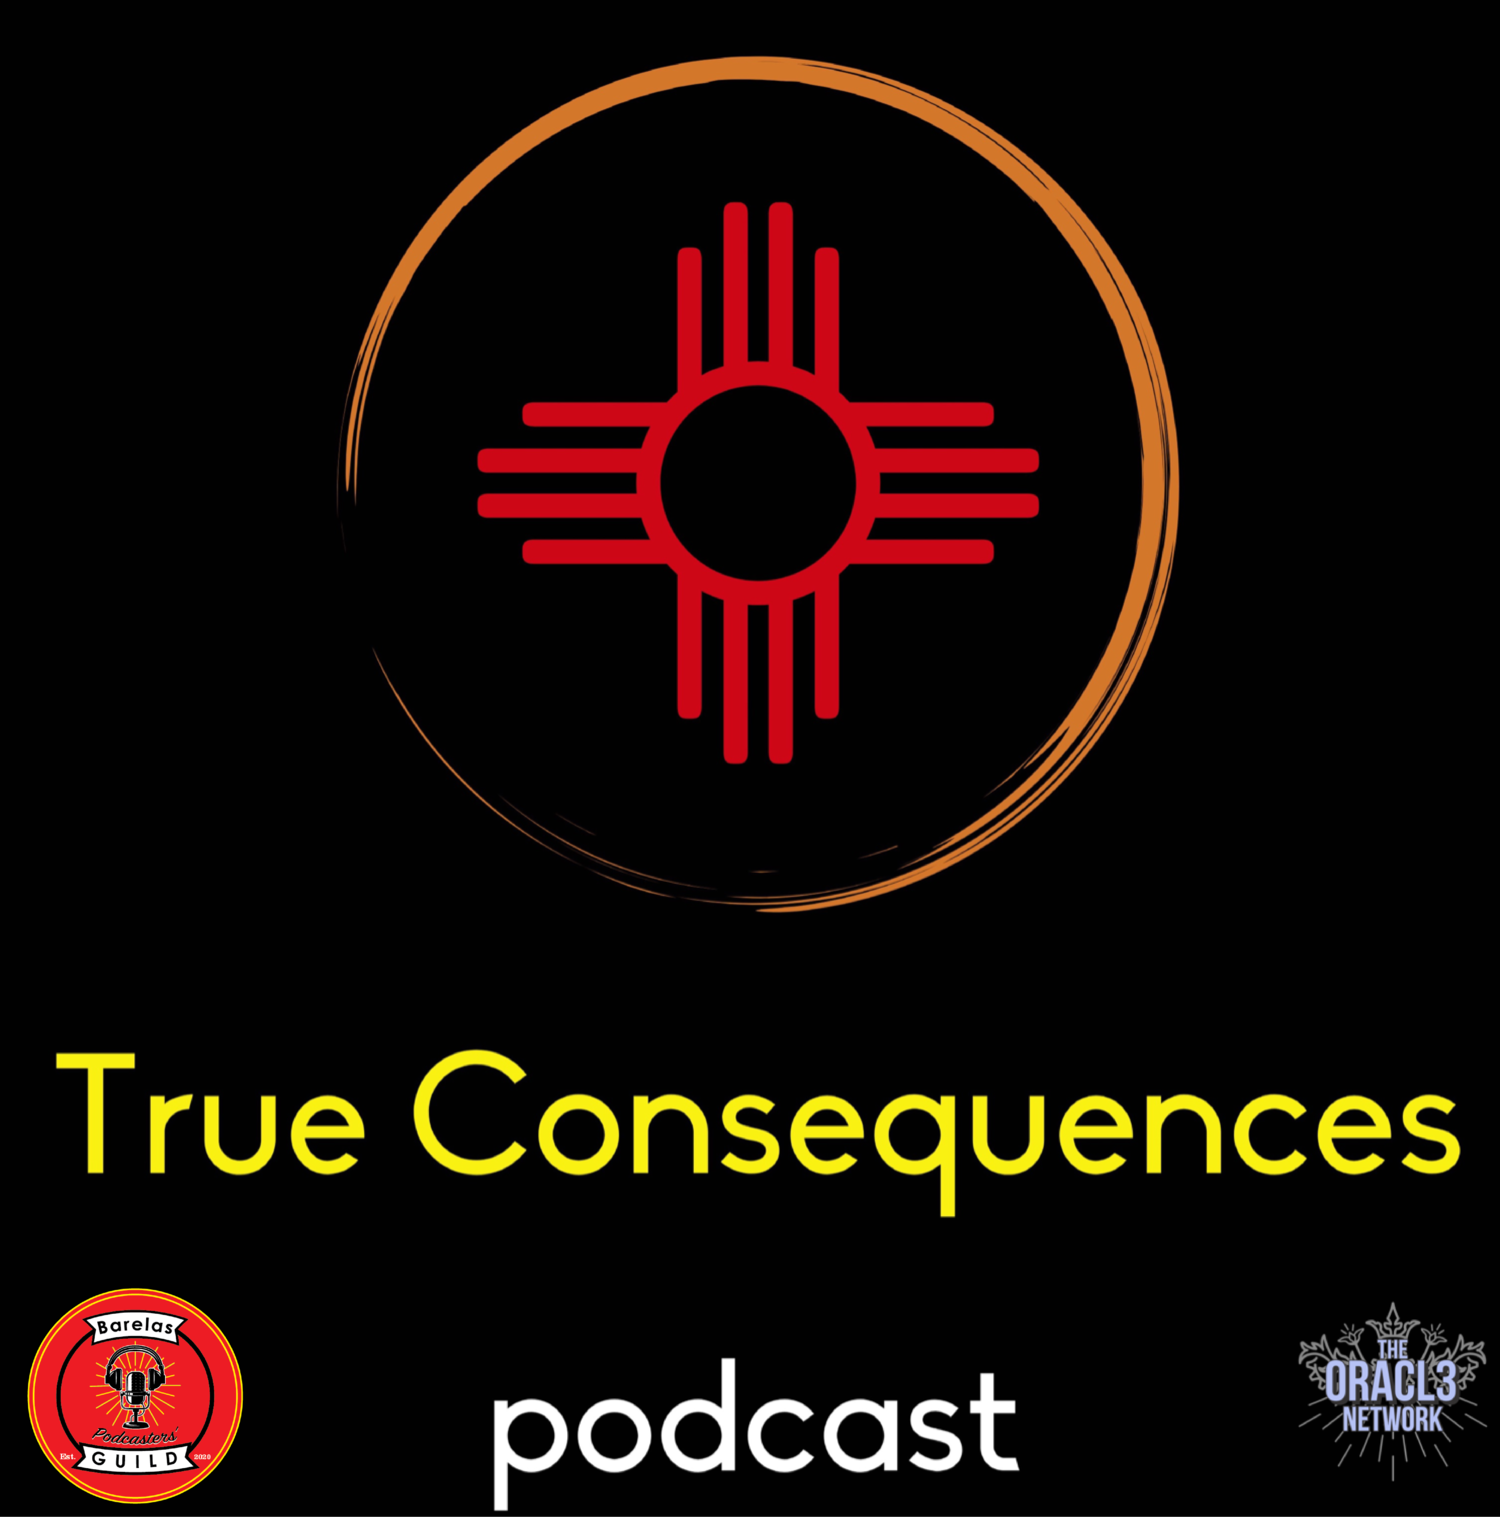 True Consequences Podcast